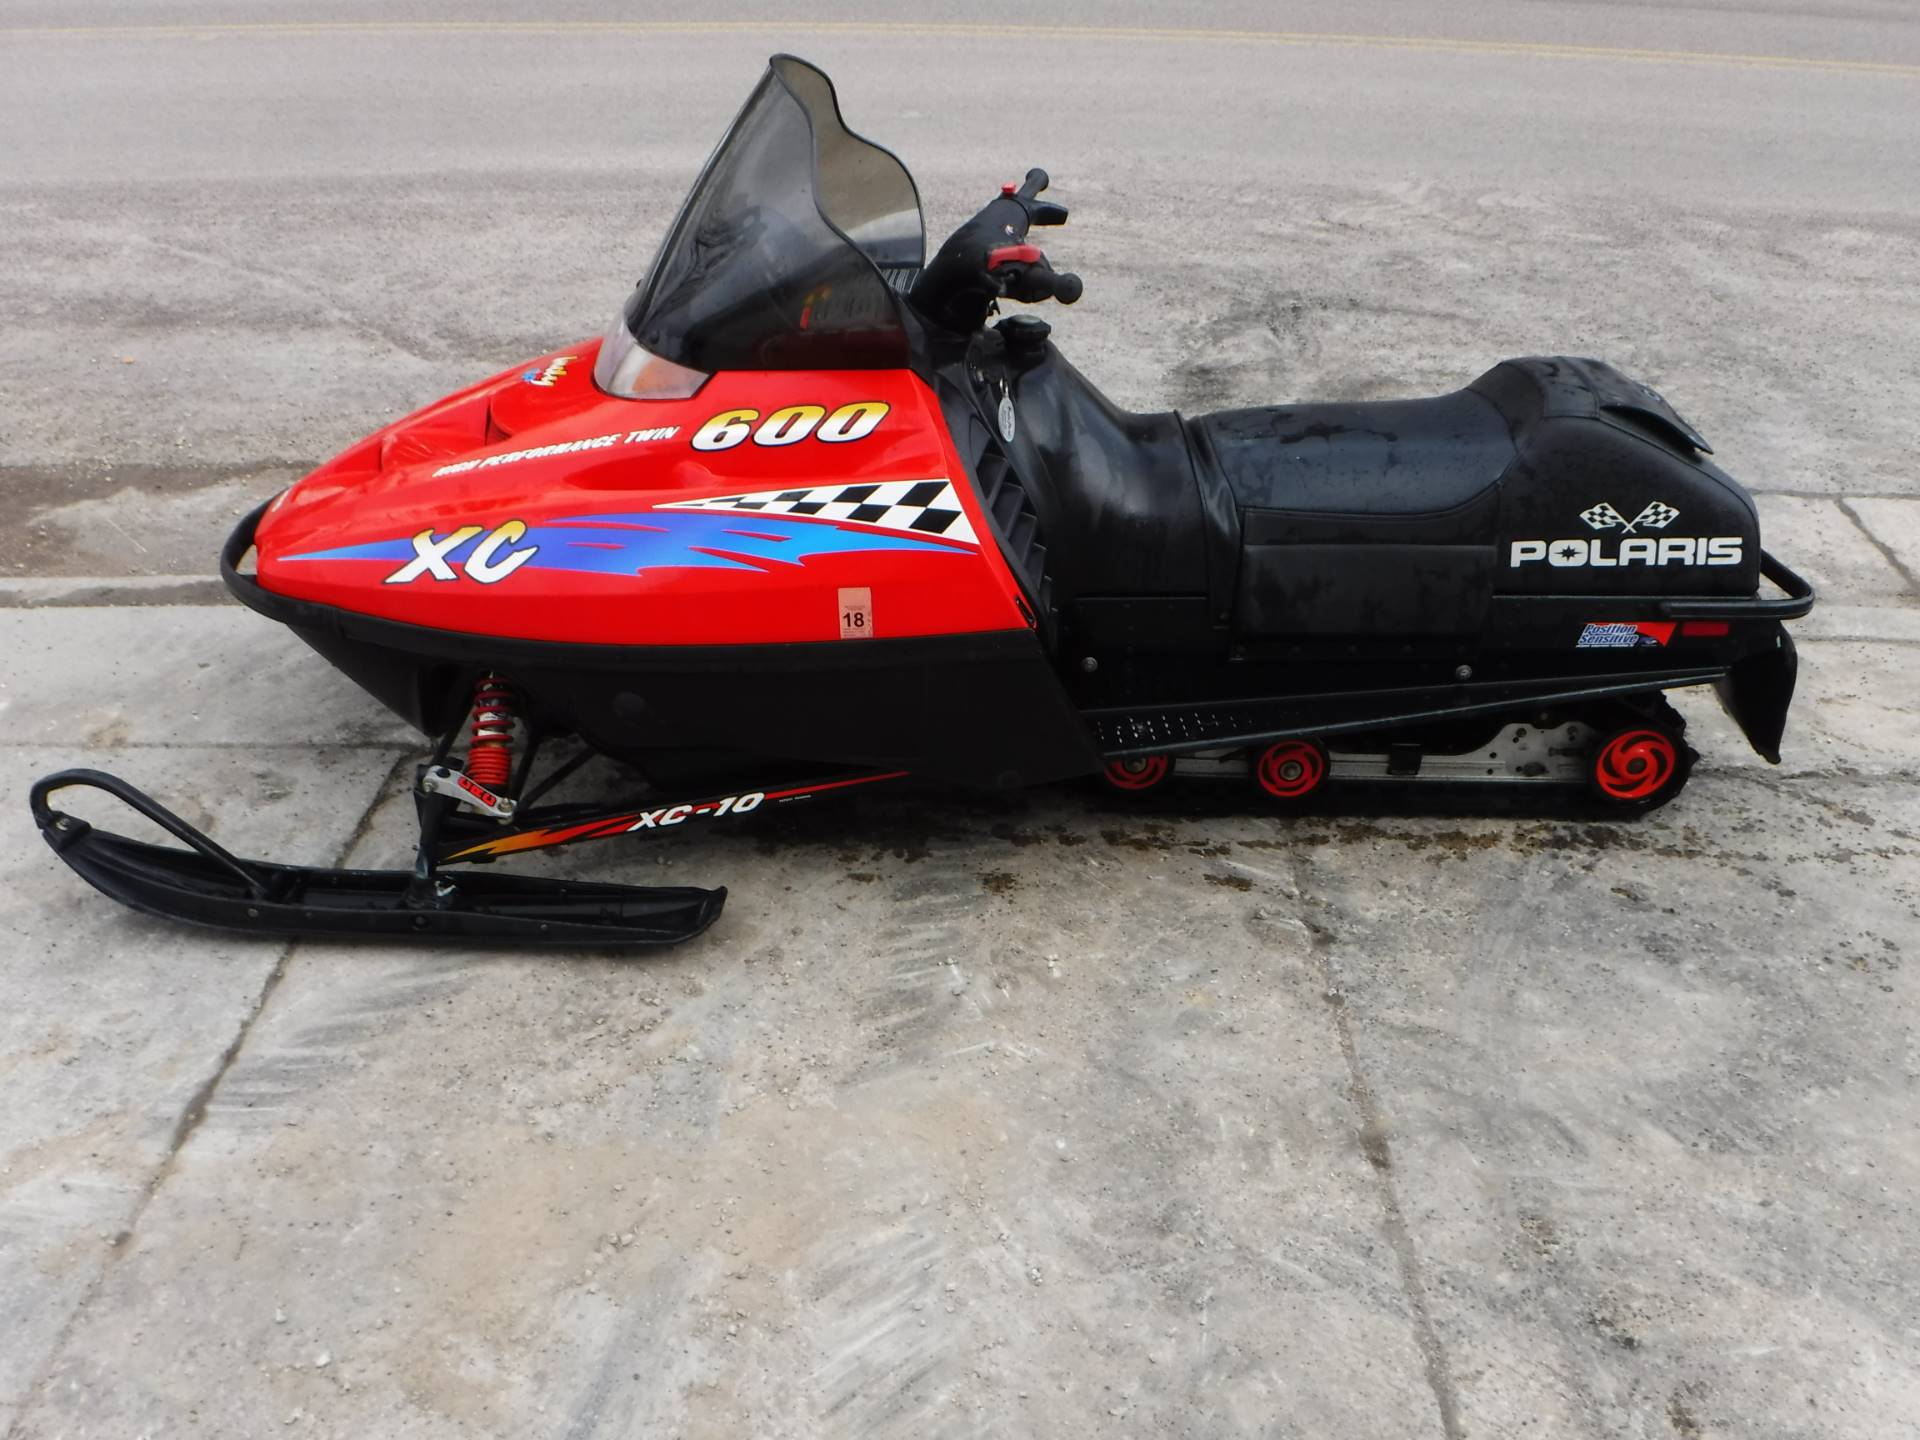 1999 Polaris Indy 600 XC SP in Mazeppa, Minnesota - Photo 1